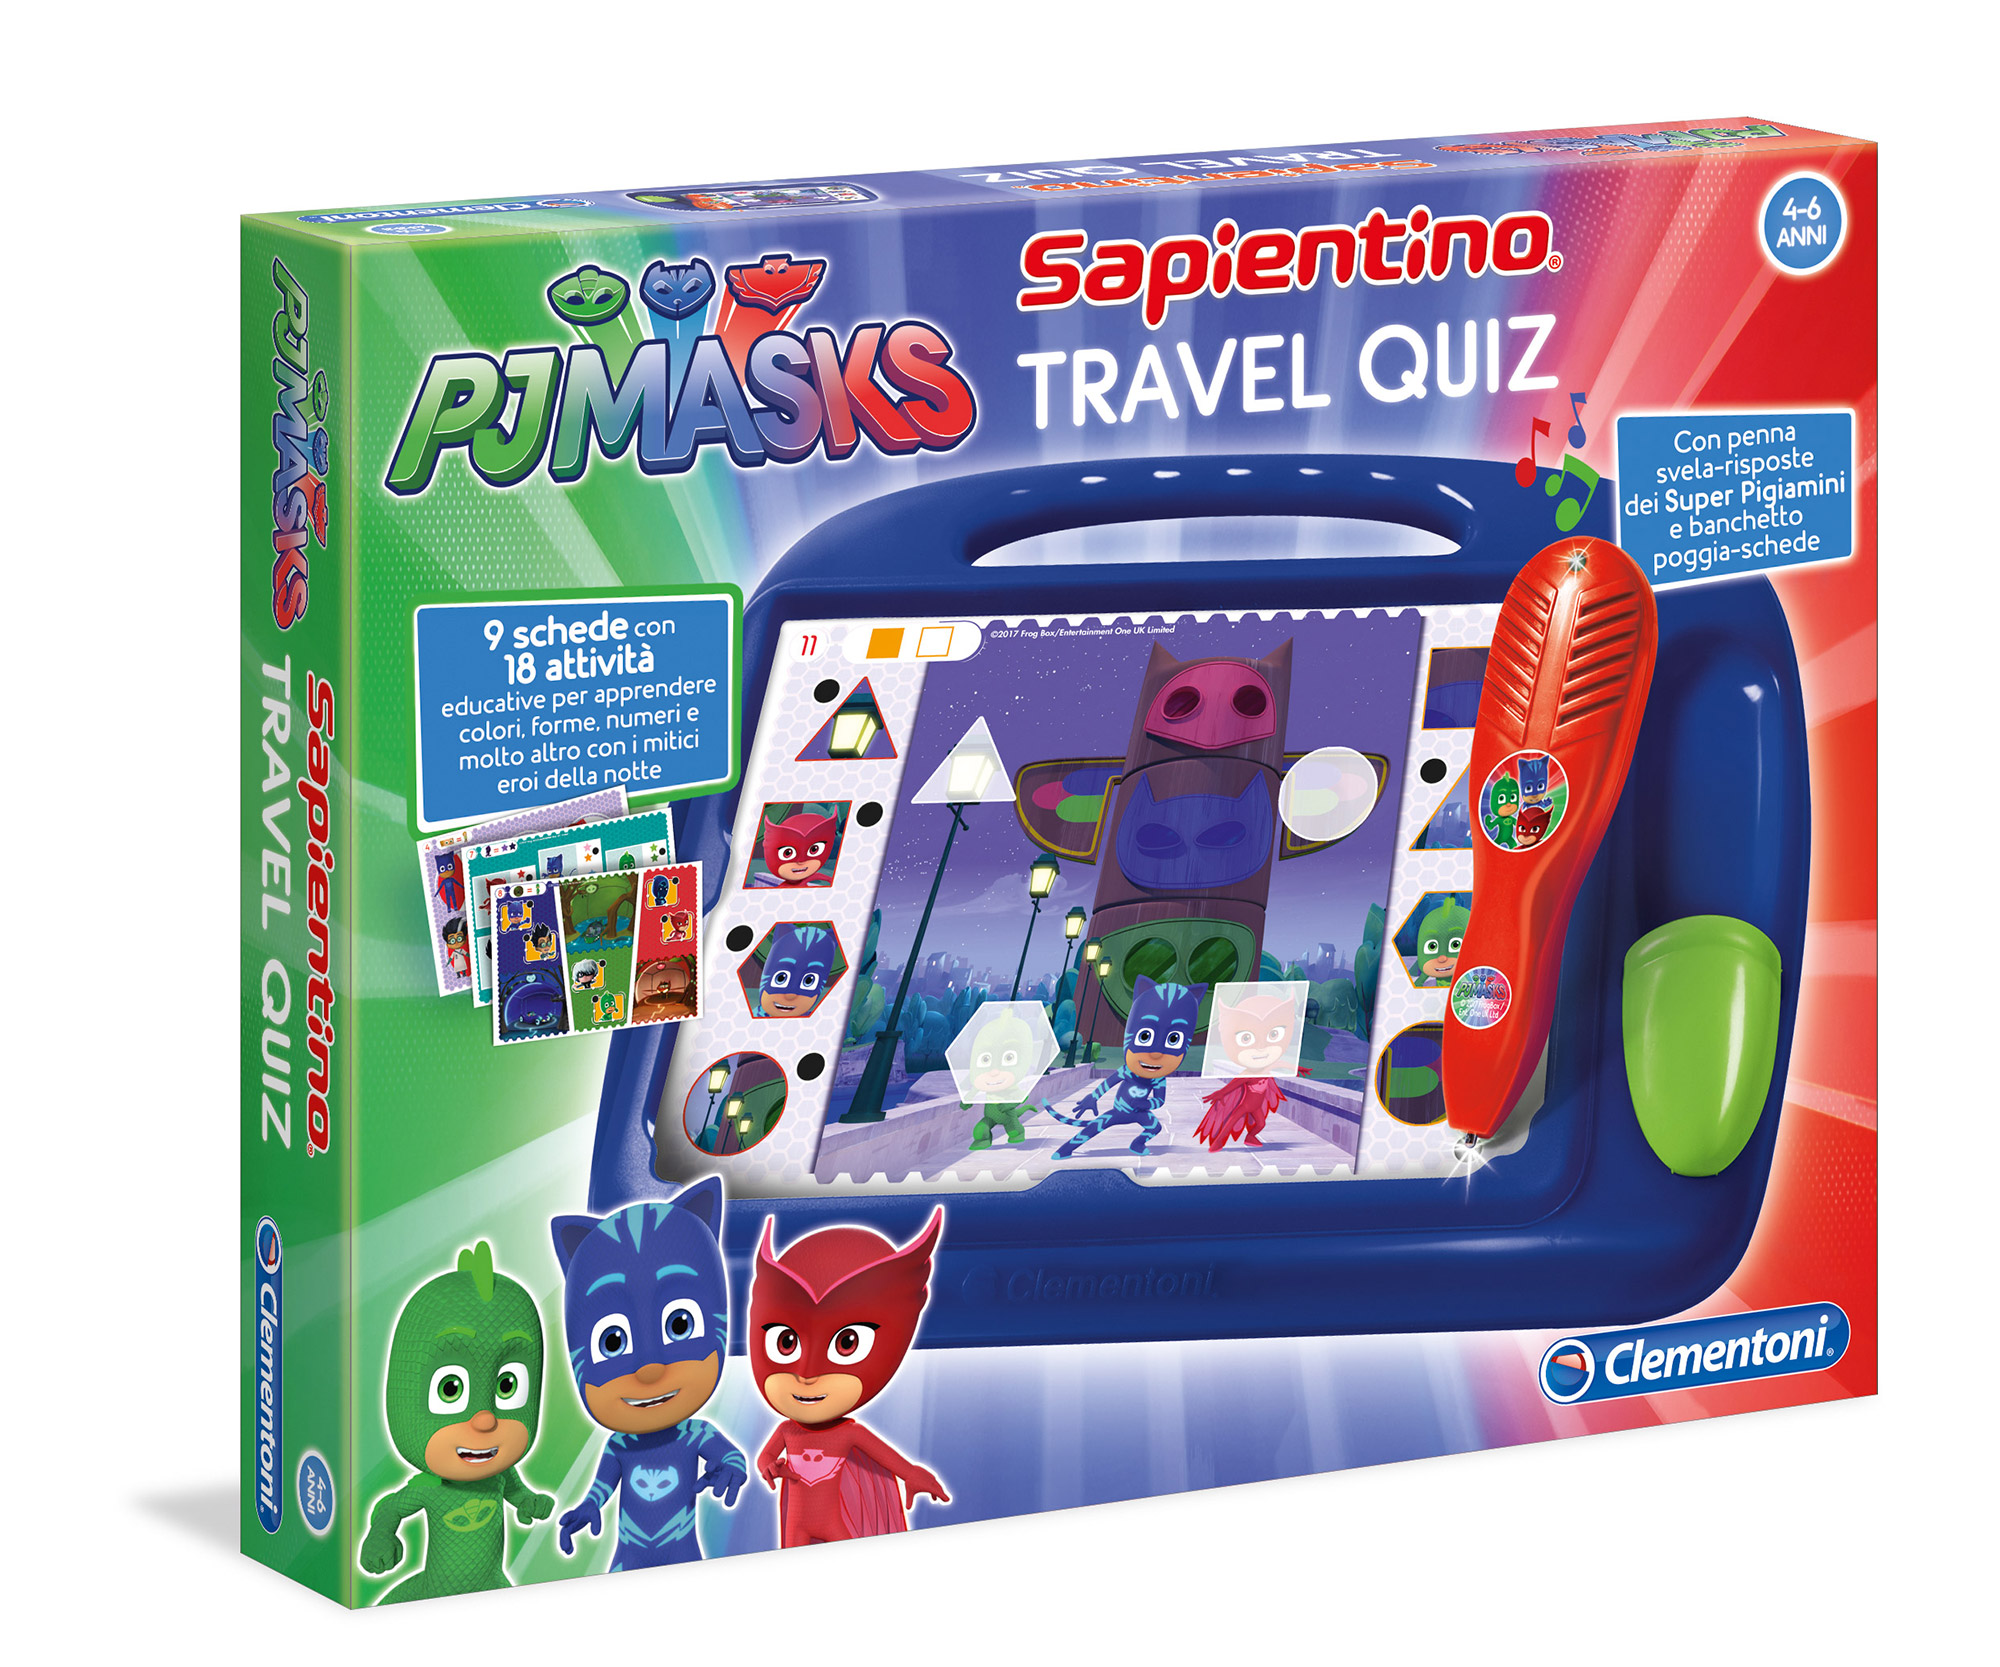 SAPIENTINO TRAVEL QUIZ PJMASKS - Sapientino - Toys Center